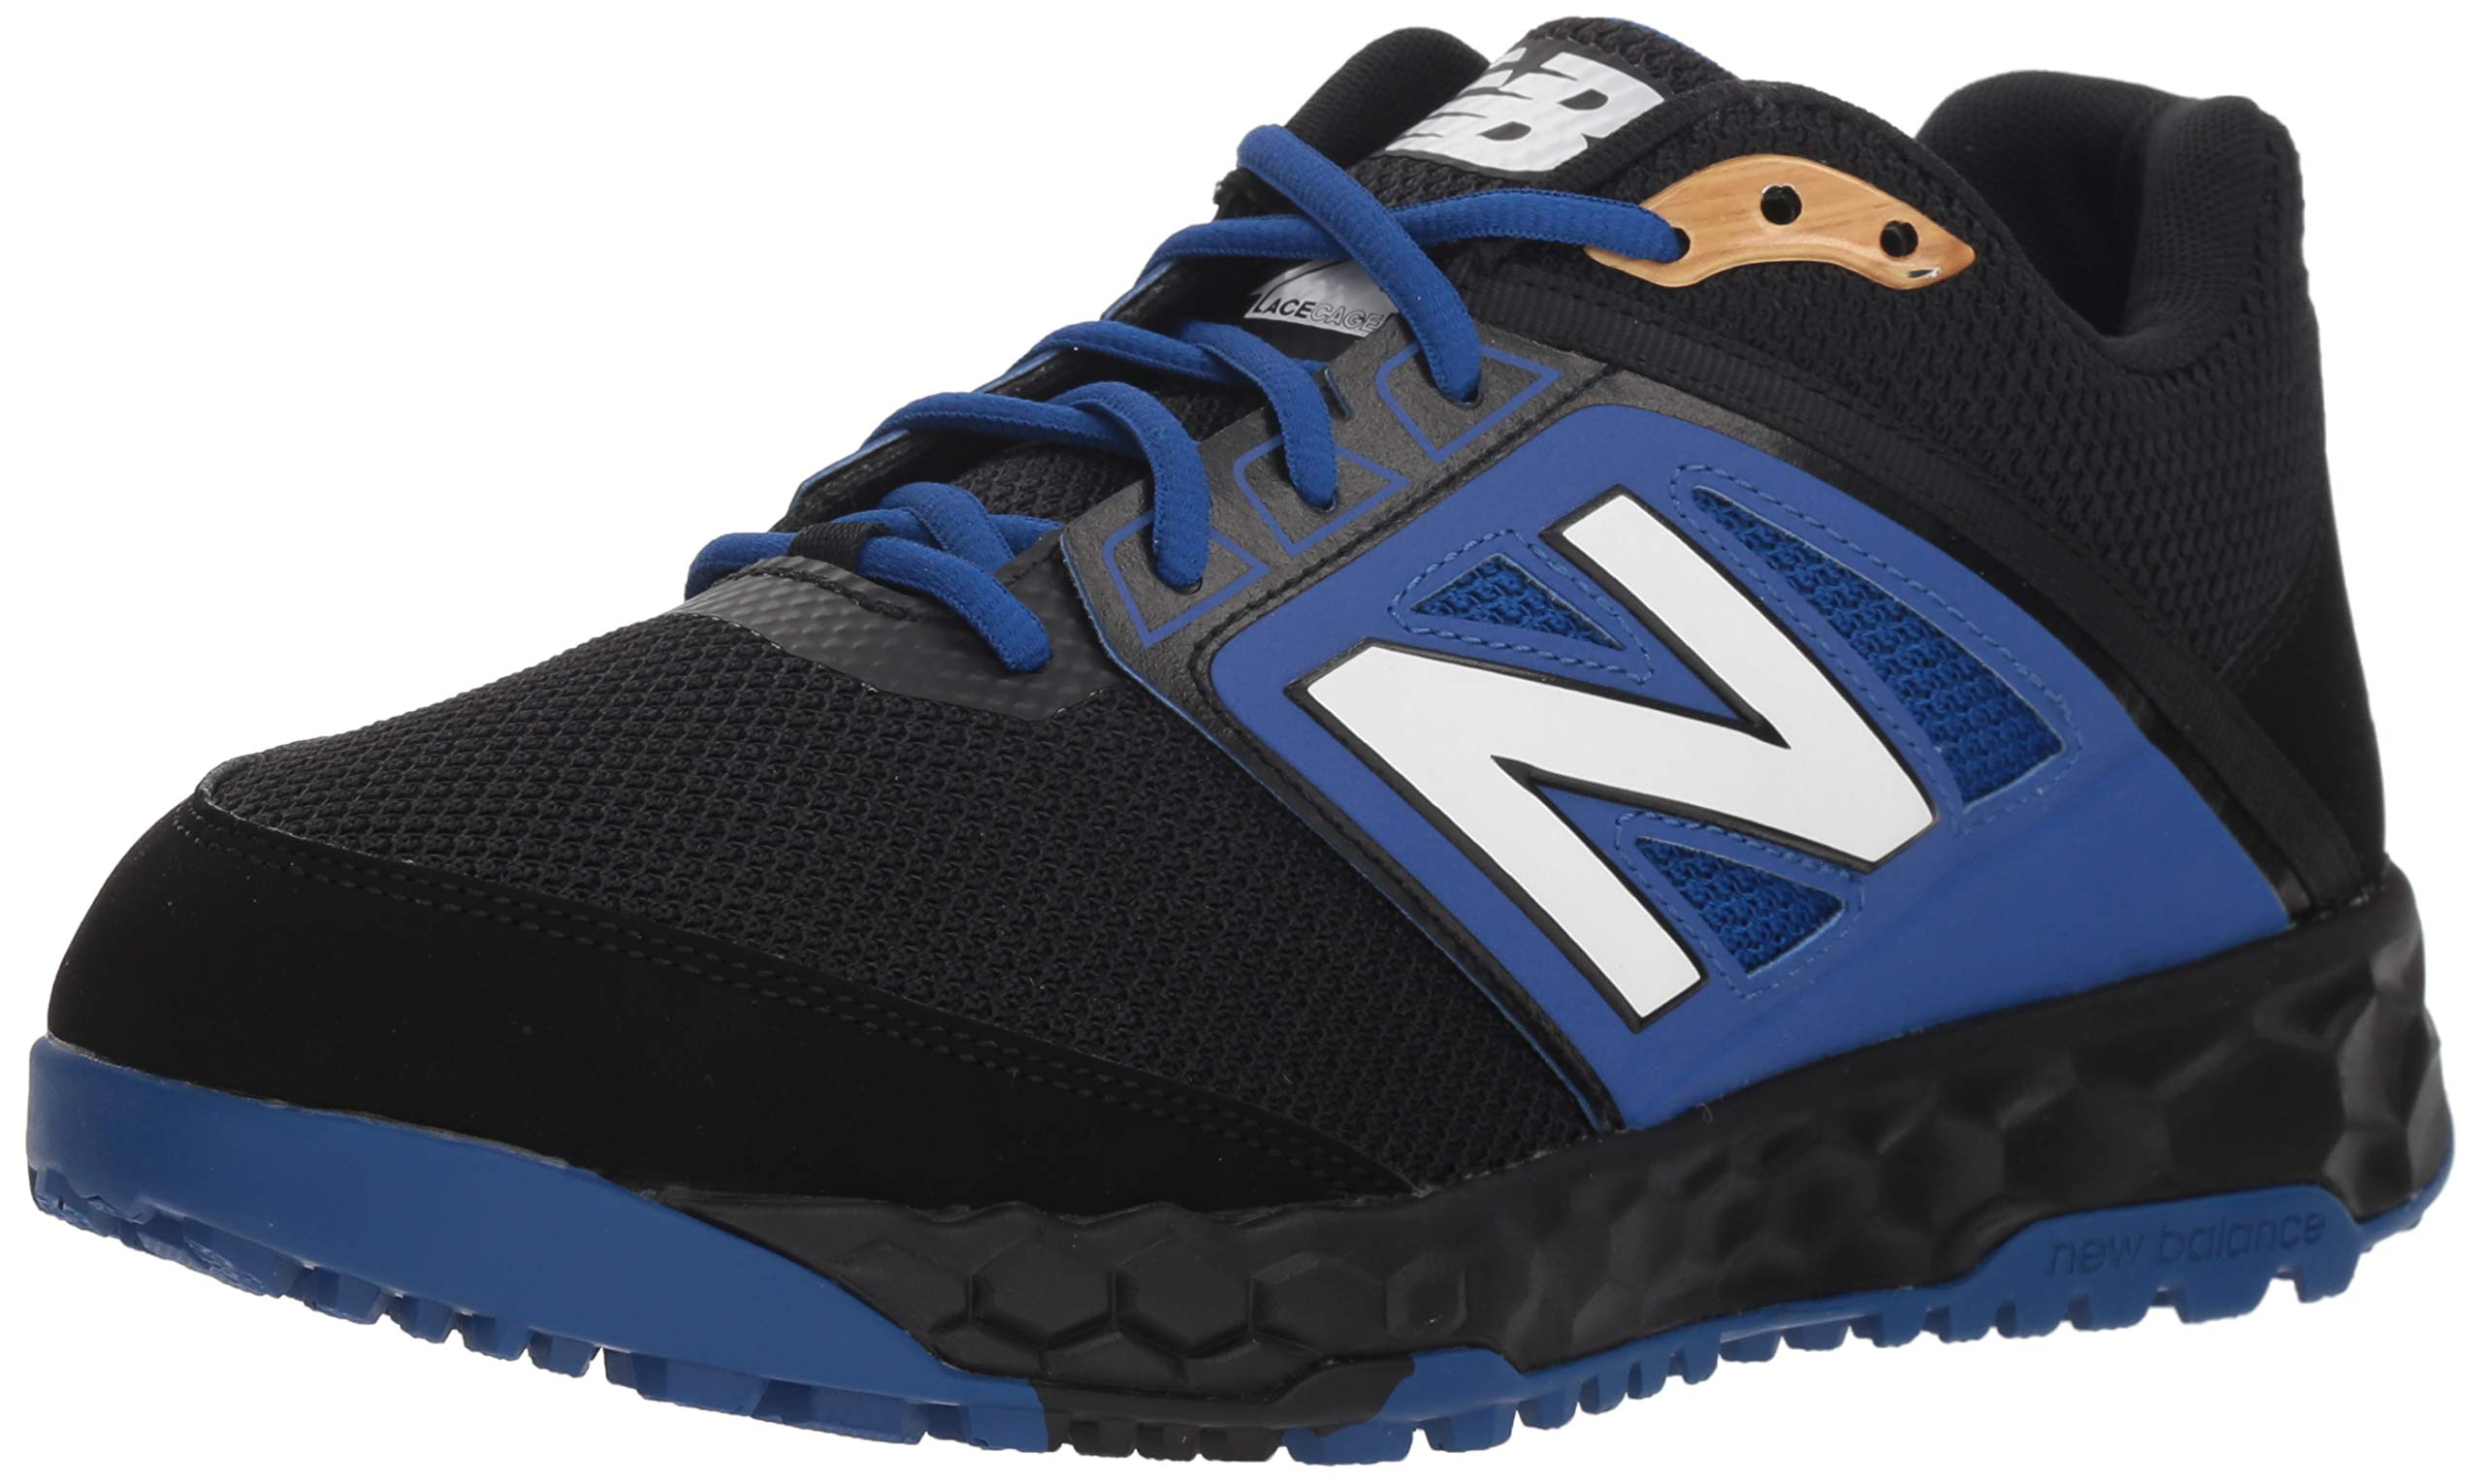 New Balance Men's 3000v4 Turf Baseball Shoe, Black/Blue, 5 D US